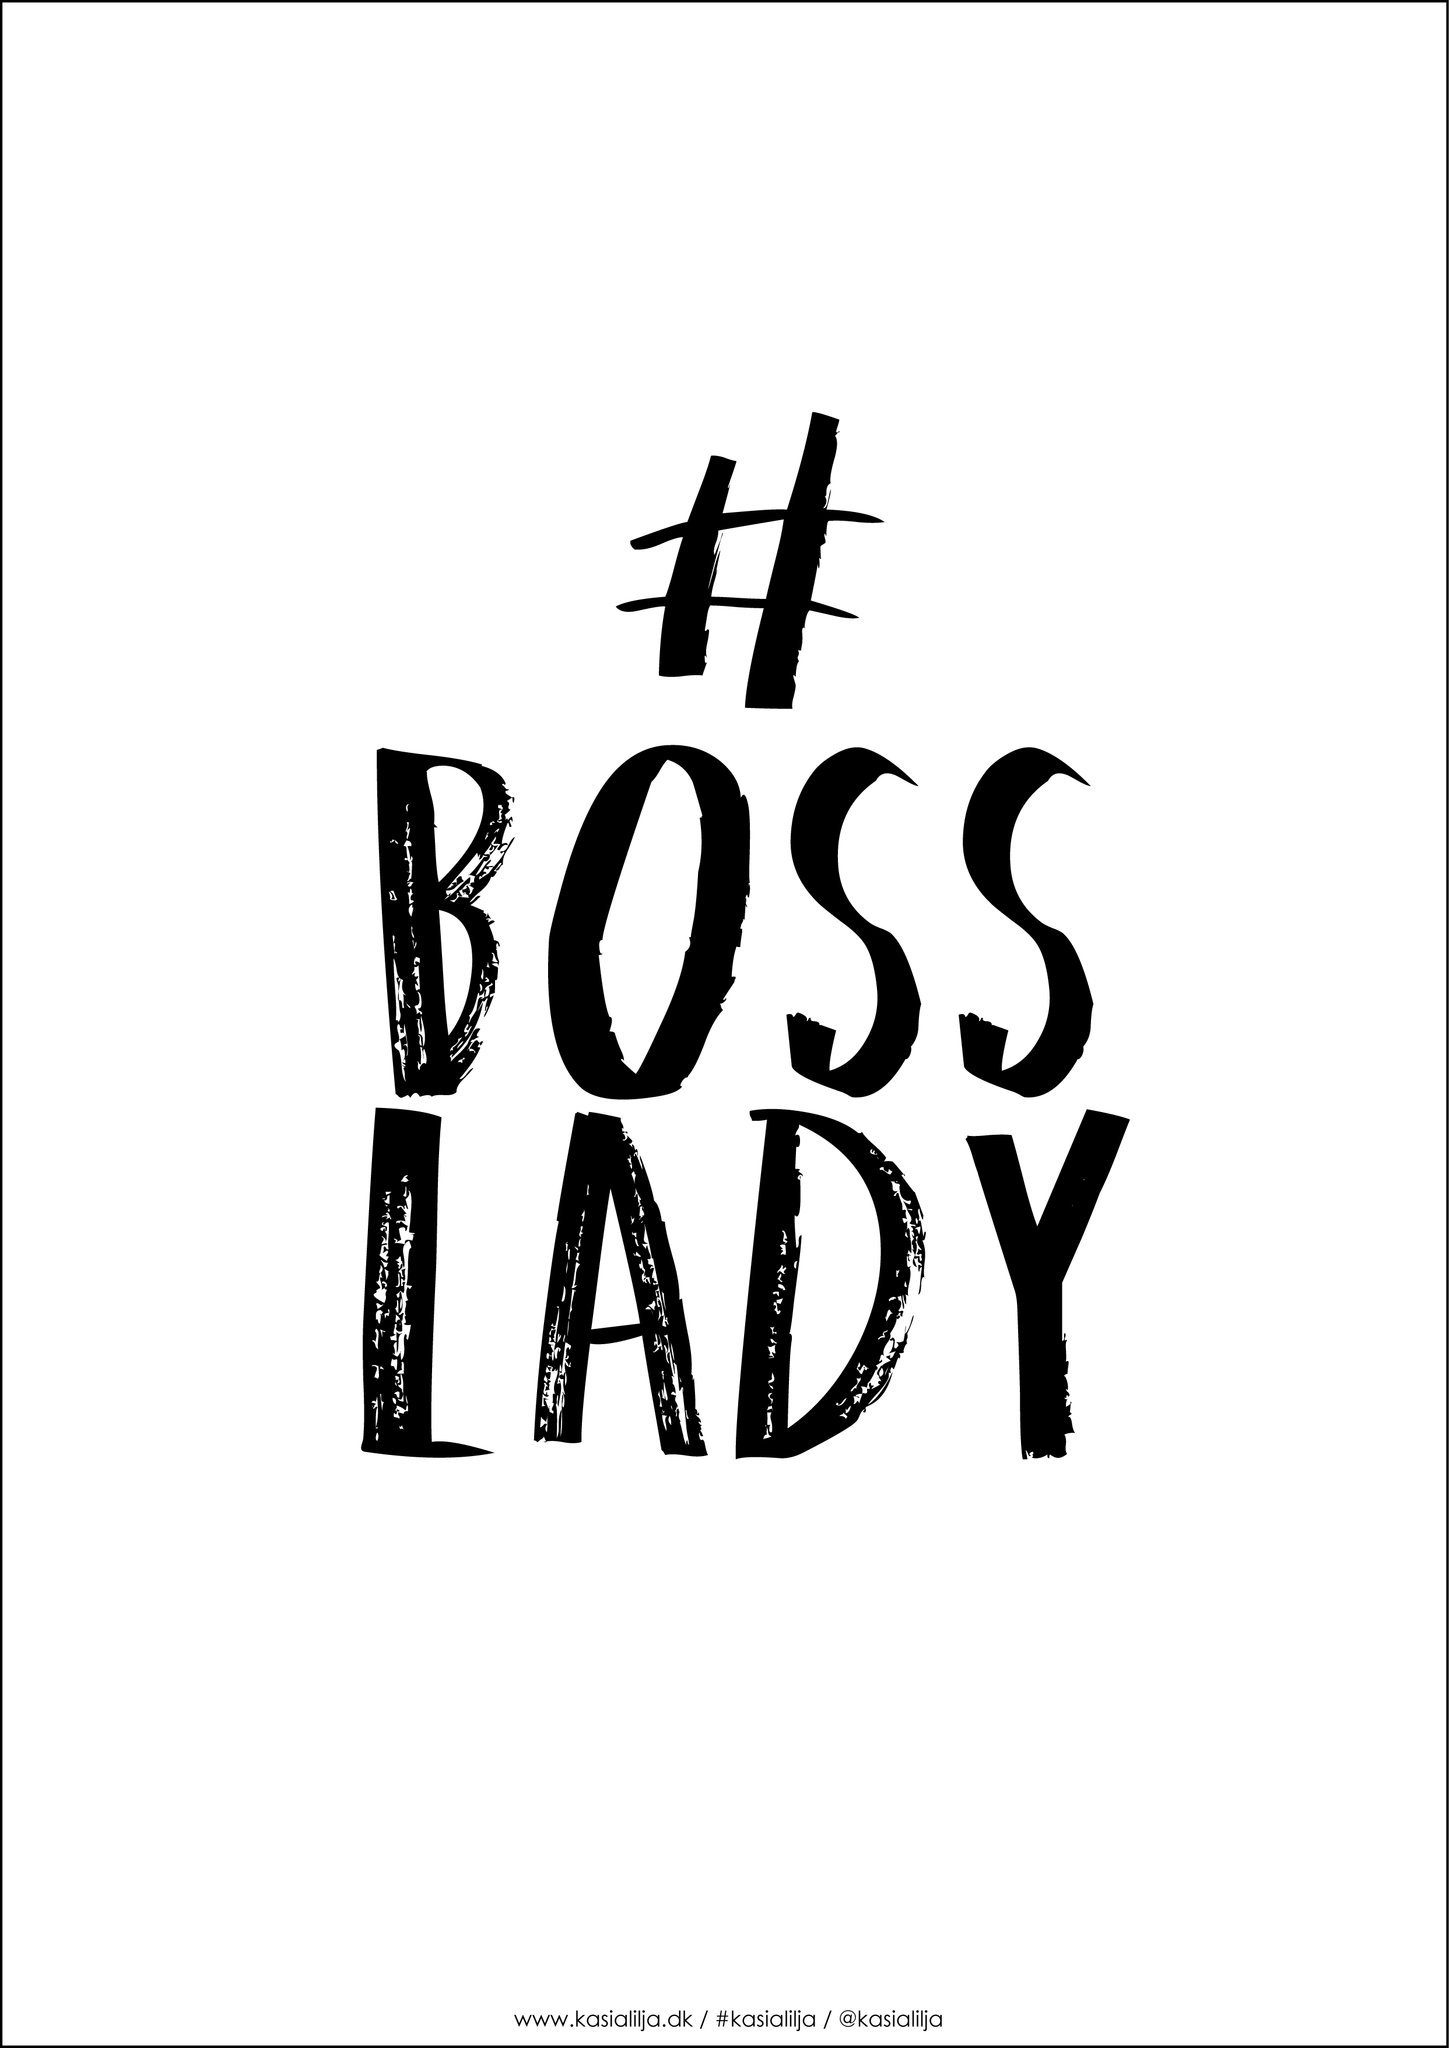 BOSS LADY / Poster - Black